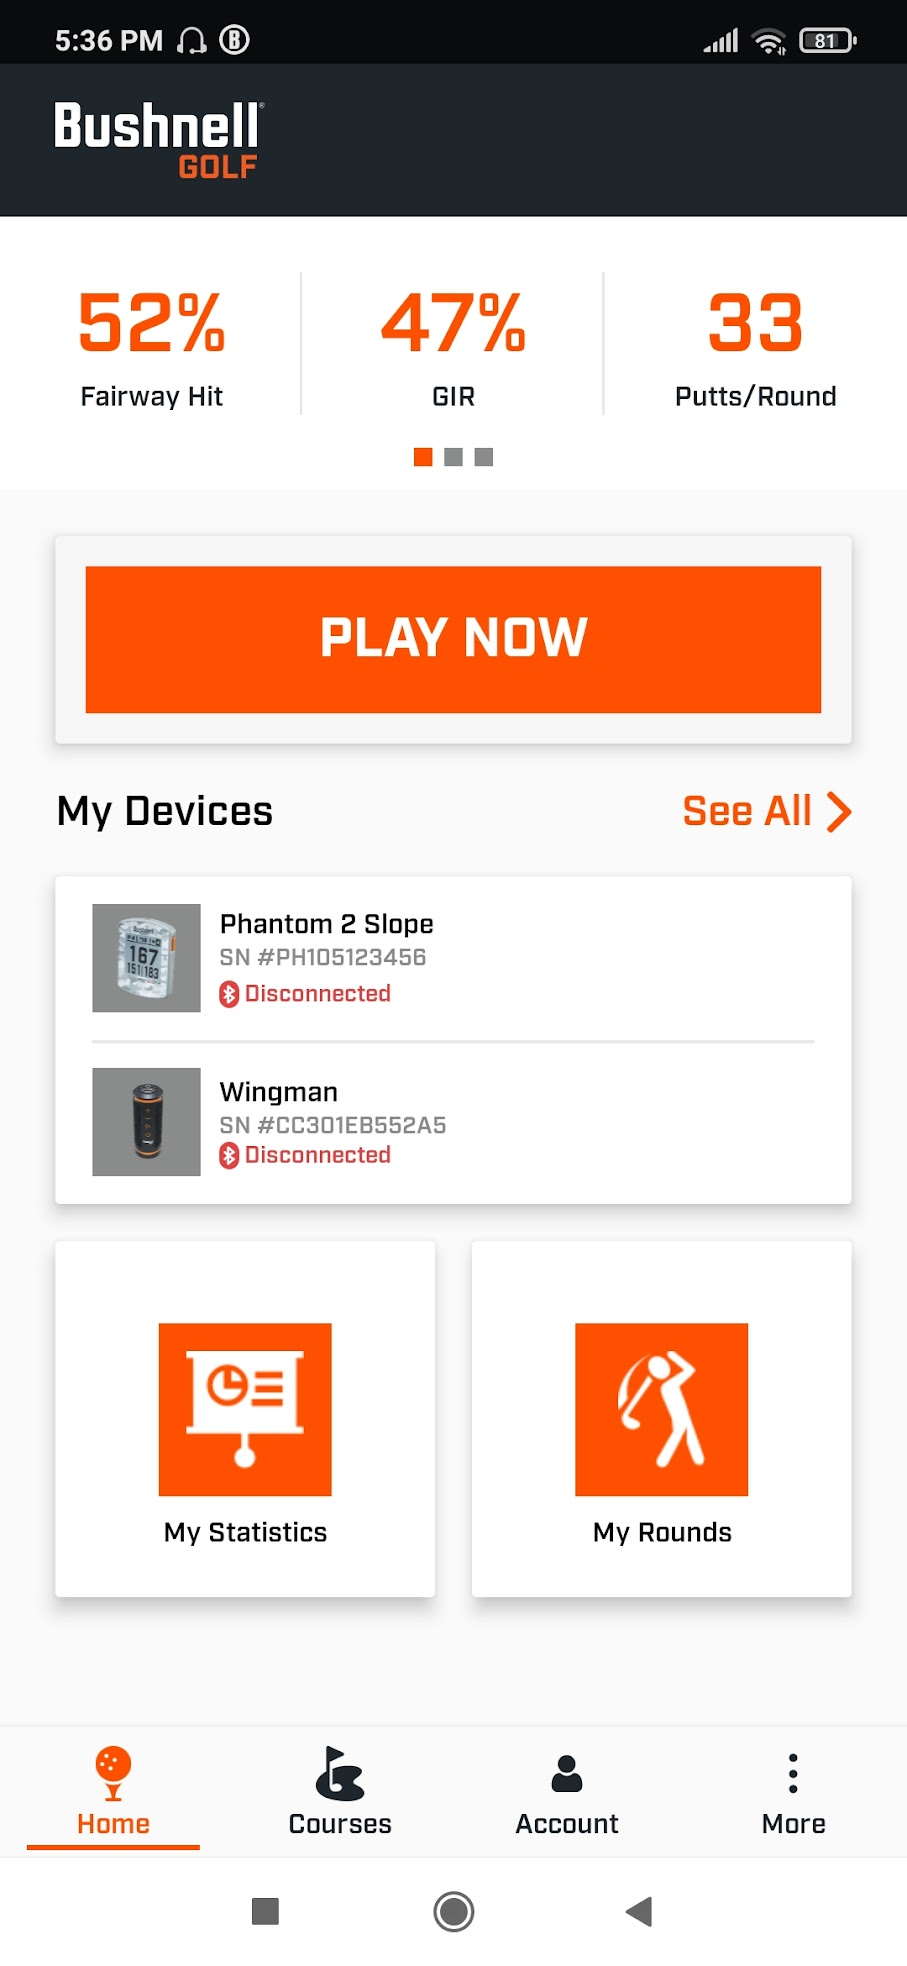 The home screen of the Bushnell app